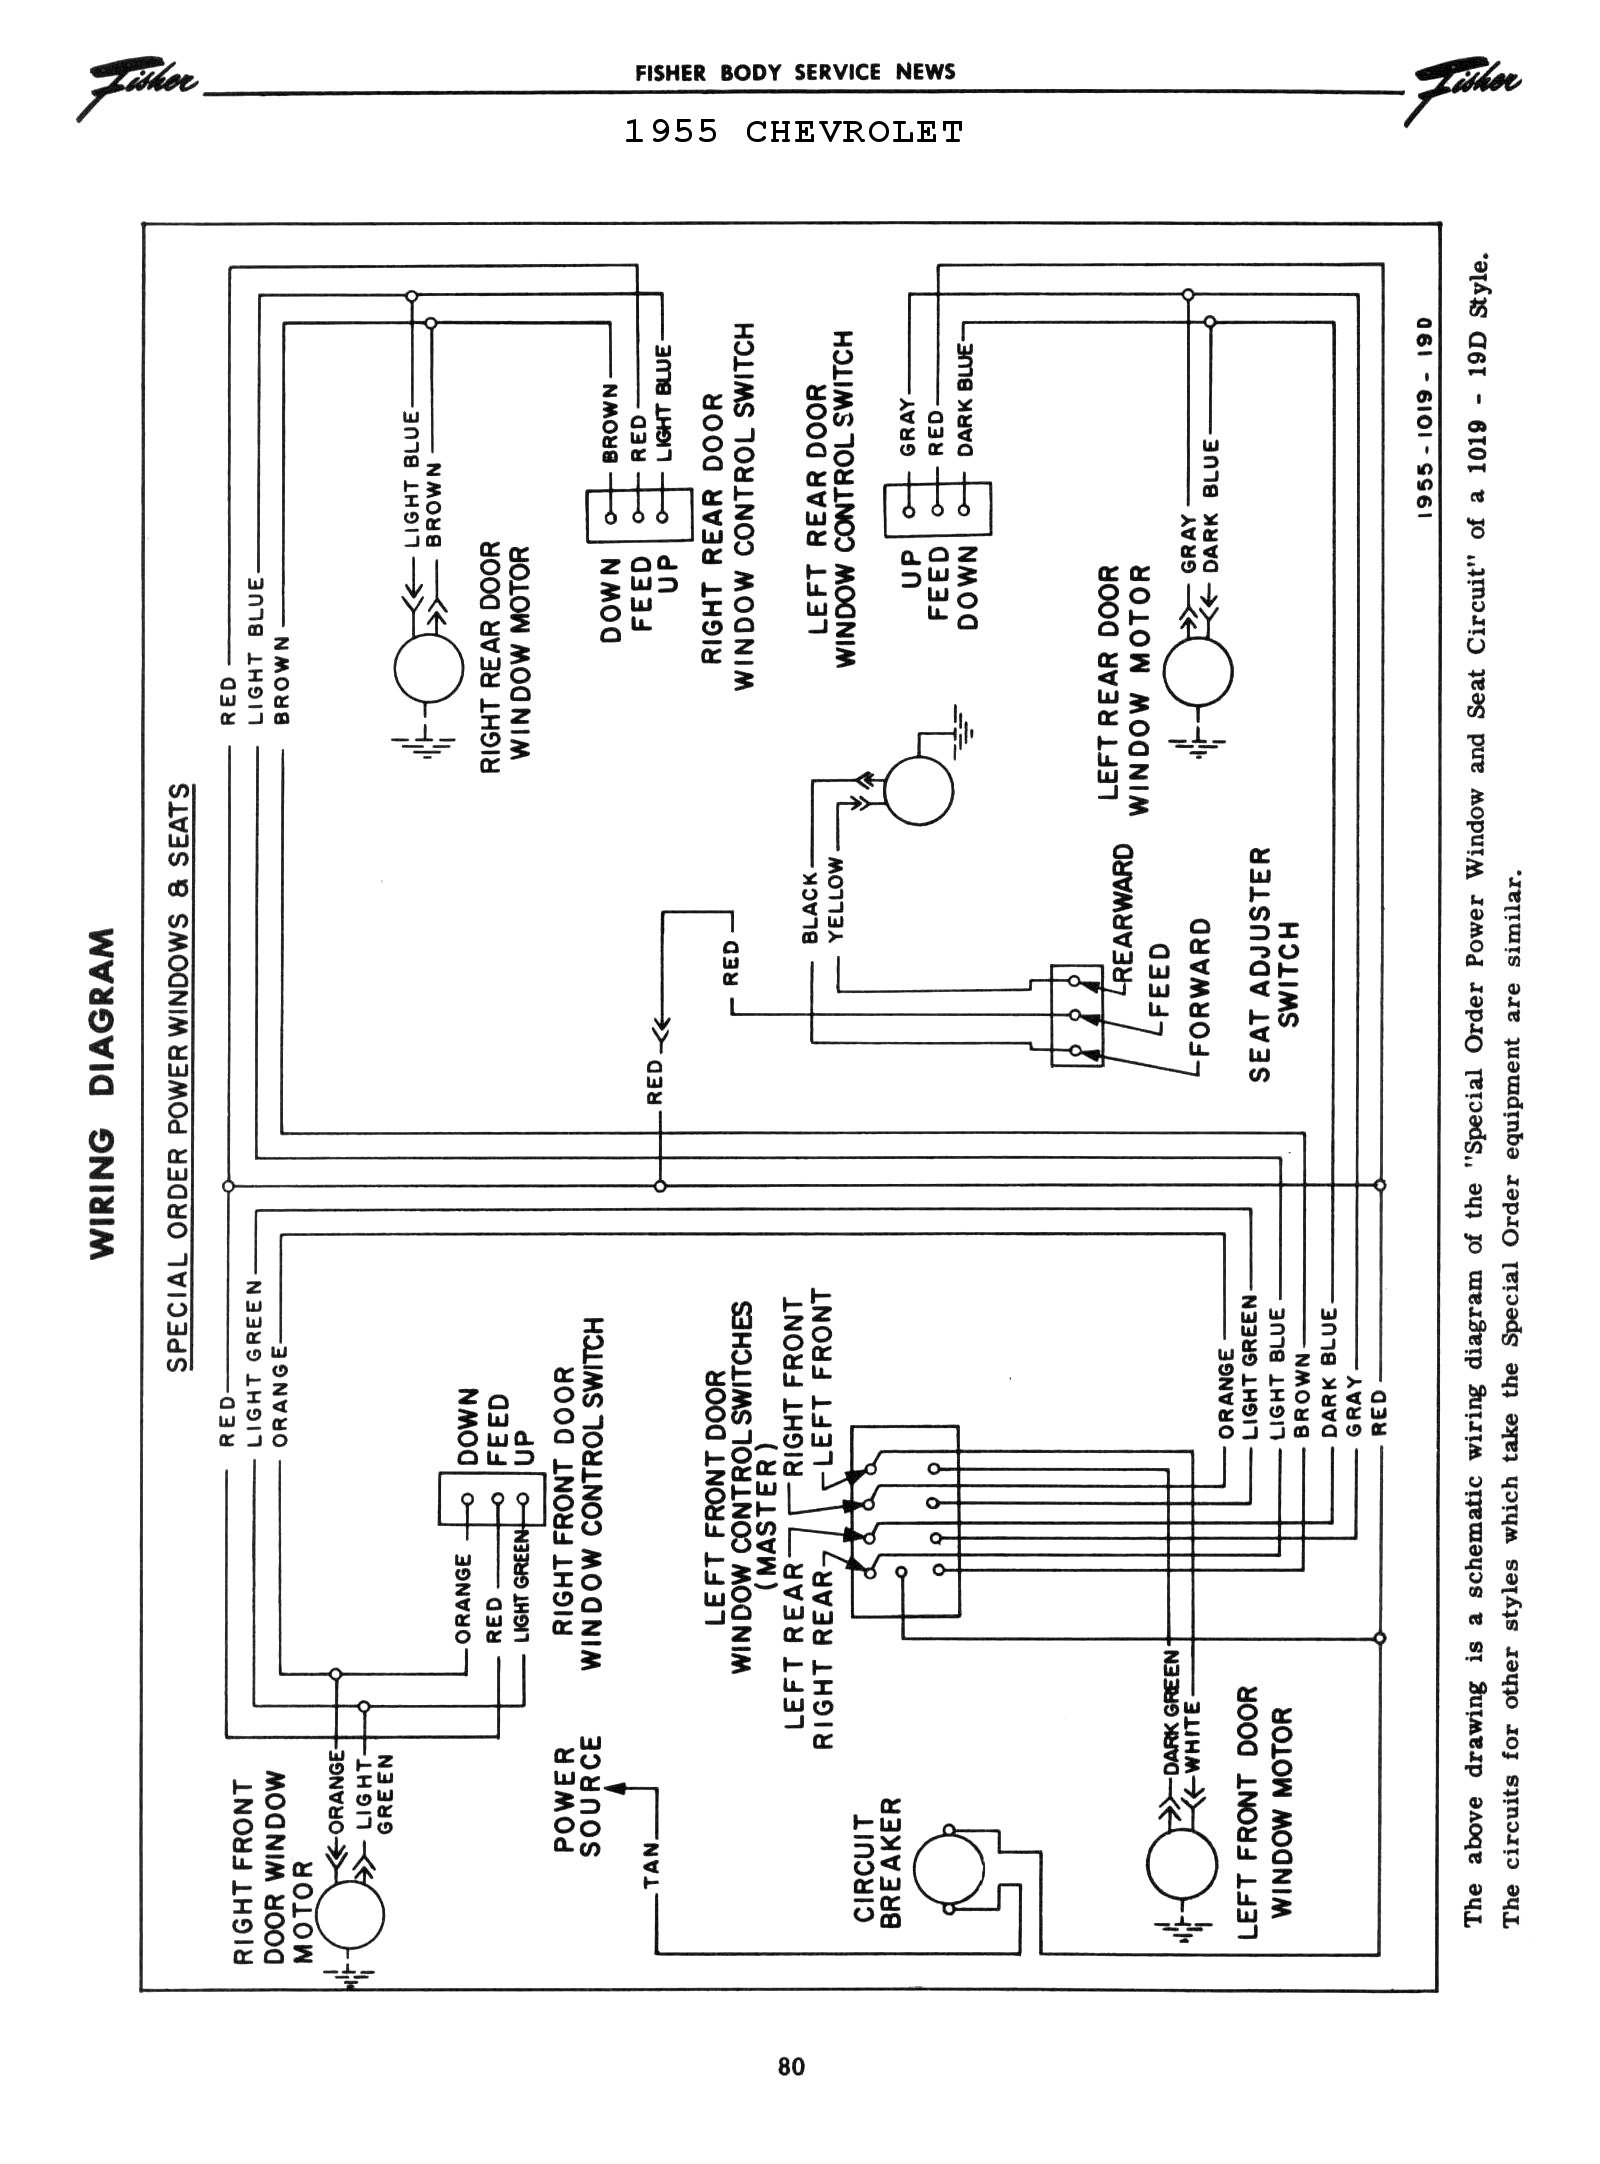 hight resolution of 56 chevy belair wiring diagram wiring diagram todays56 chevy belair wiring diagram wiring library 56 chevy